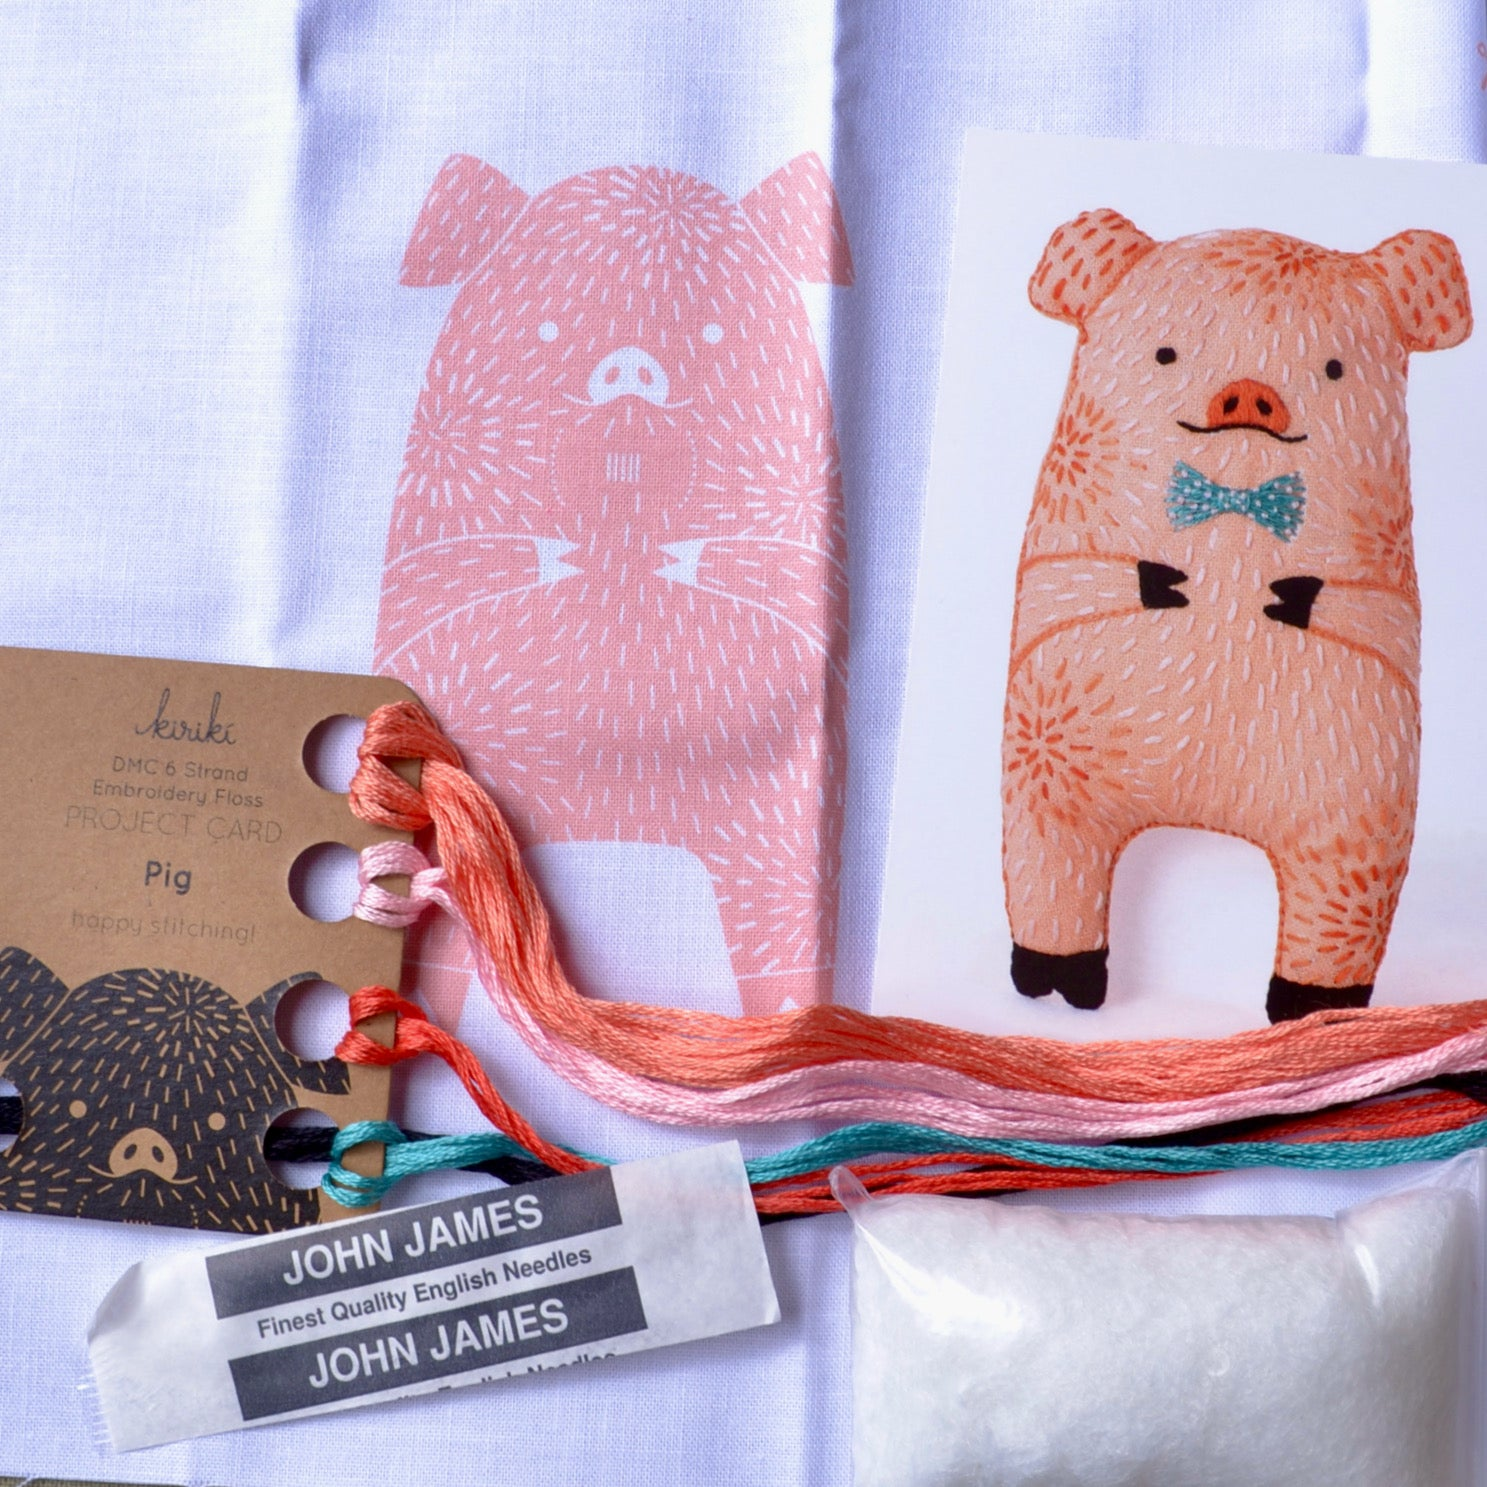 Embroidery Kit, Kiriki Press, Pink Pig